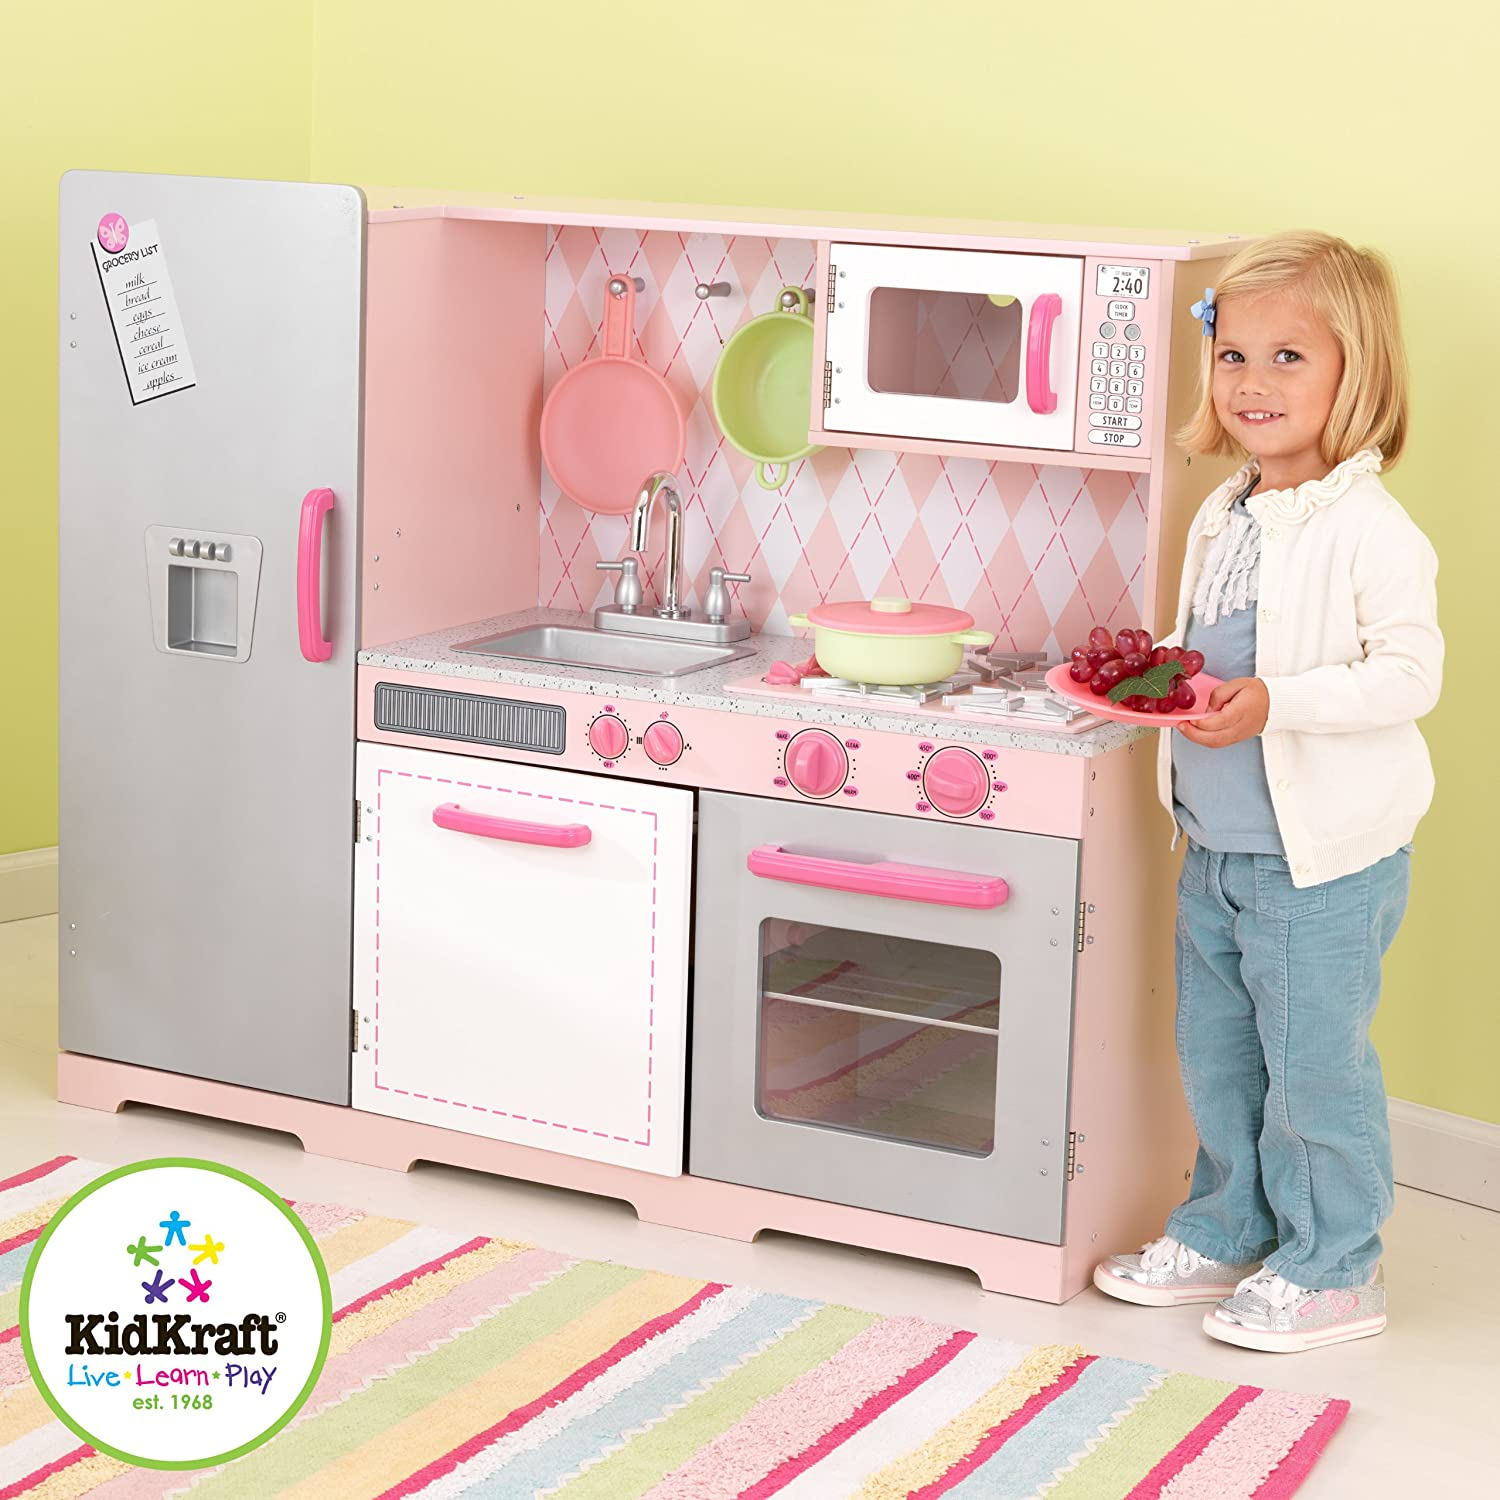 Amazon.com: KidKraft Pink Argyle Kitchen: Toys & Games